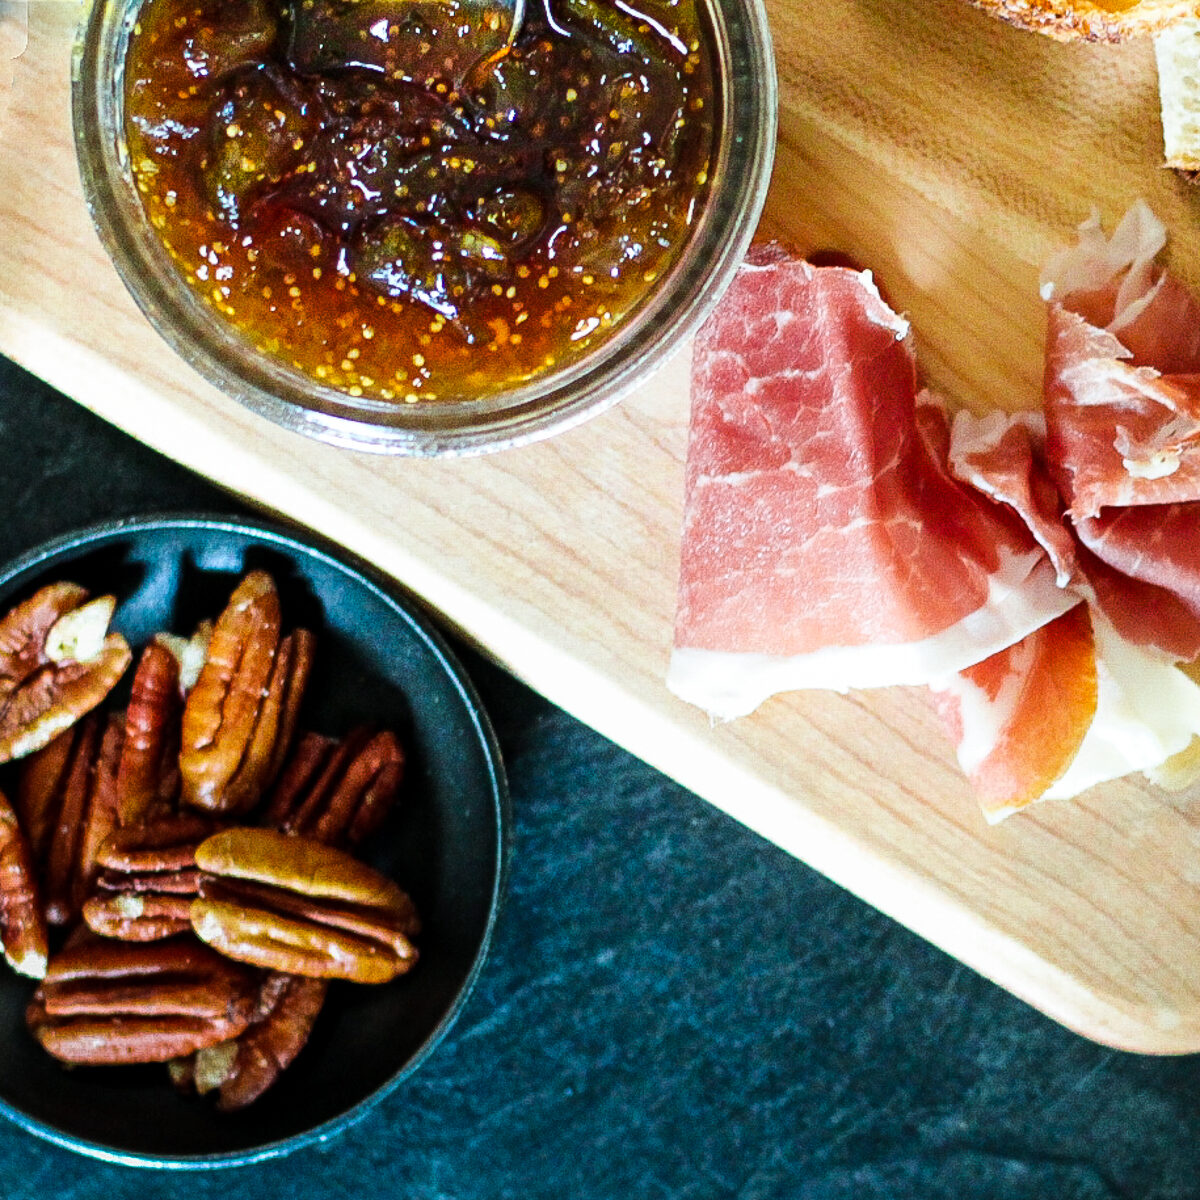 Fig jam in jar beside prosciutto and pecans